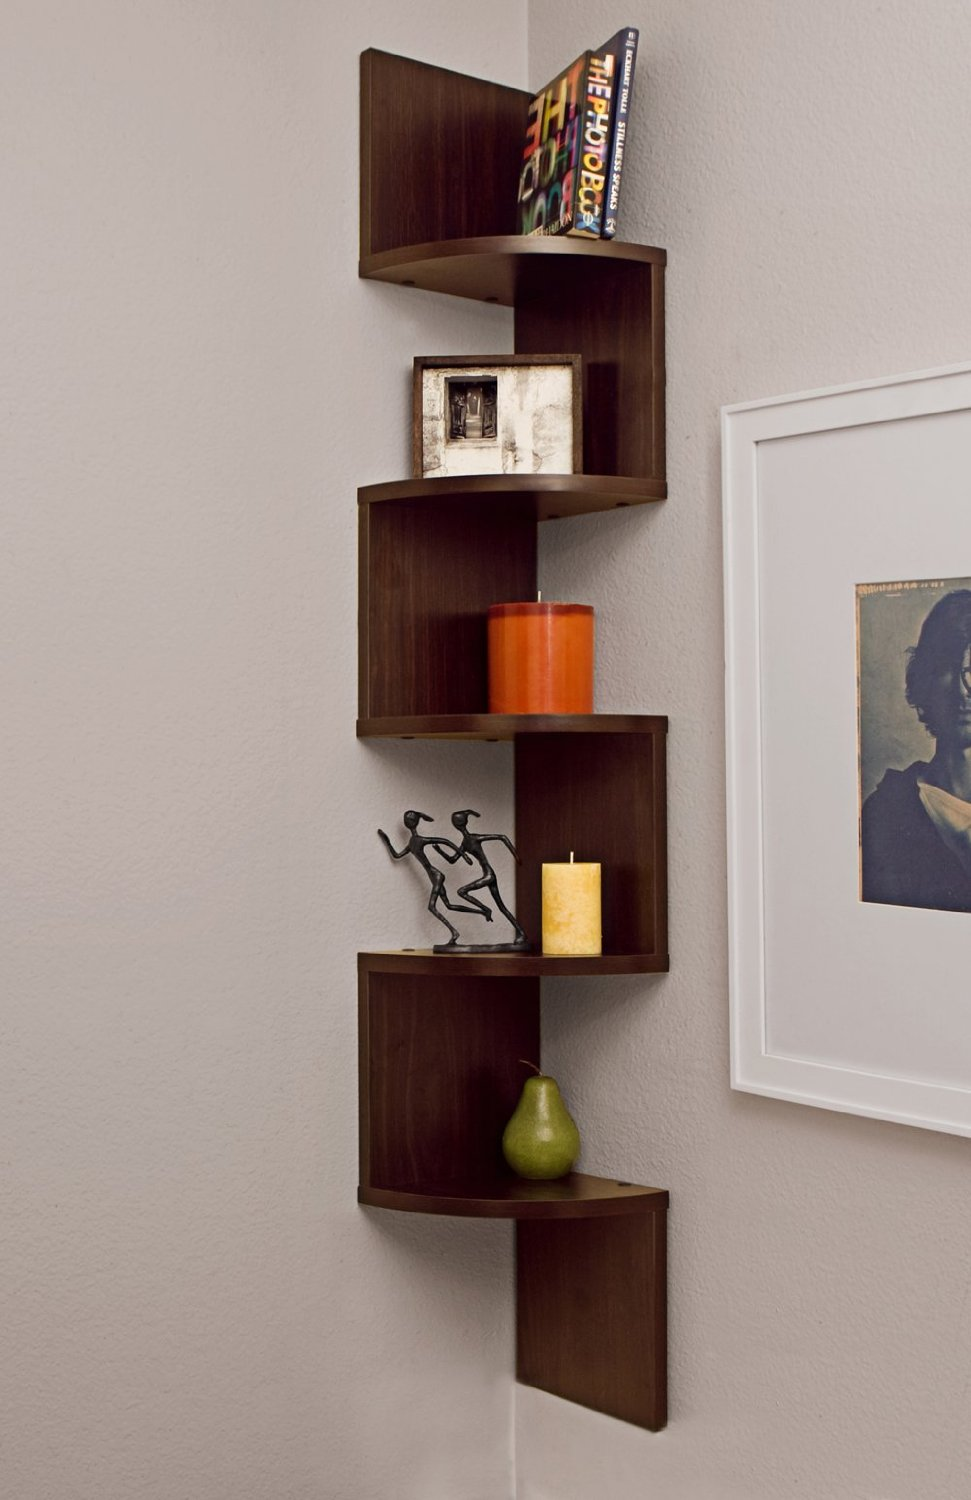 main types corner shelves used for decor and storage triangular floating shelf sofa with oak wall ikea office bookshelf furniture cabinets led glass square entryway hooks cubbies